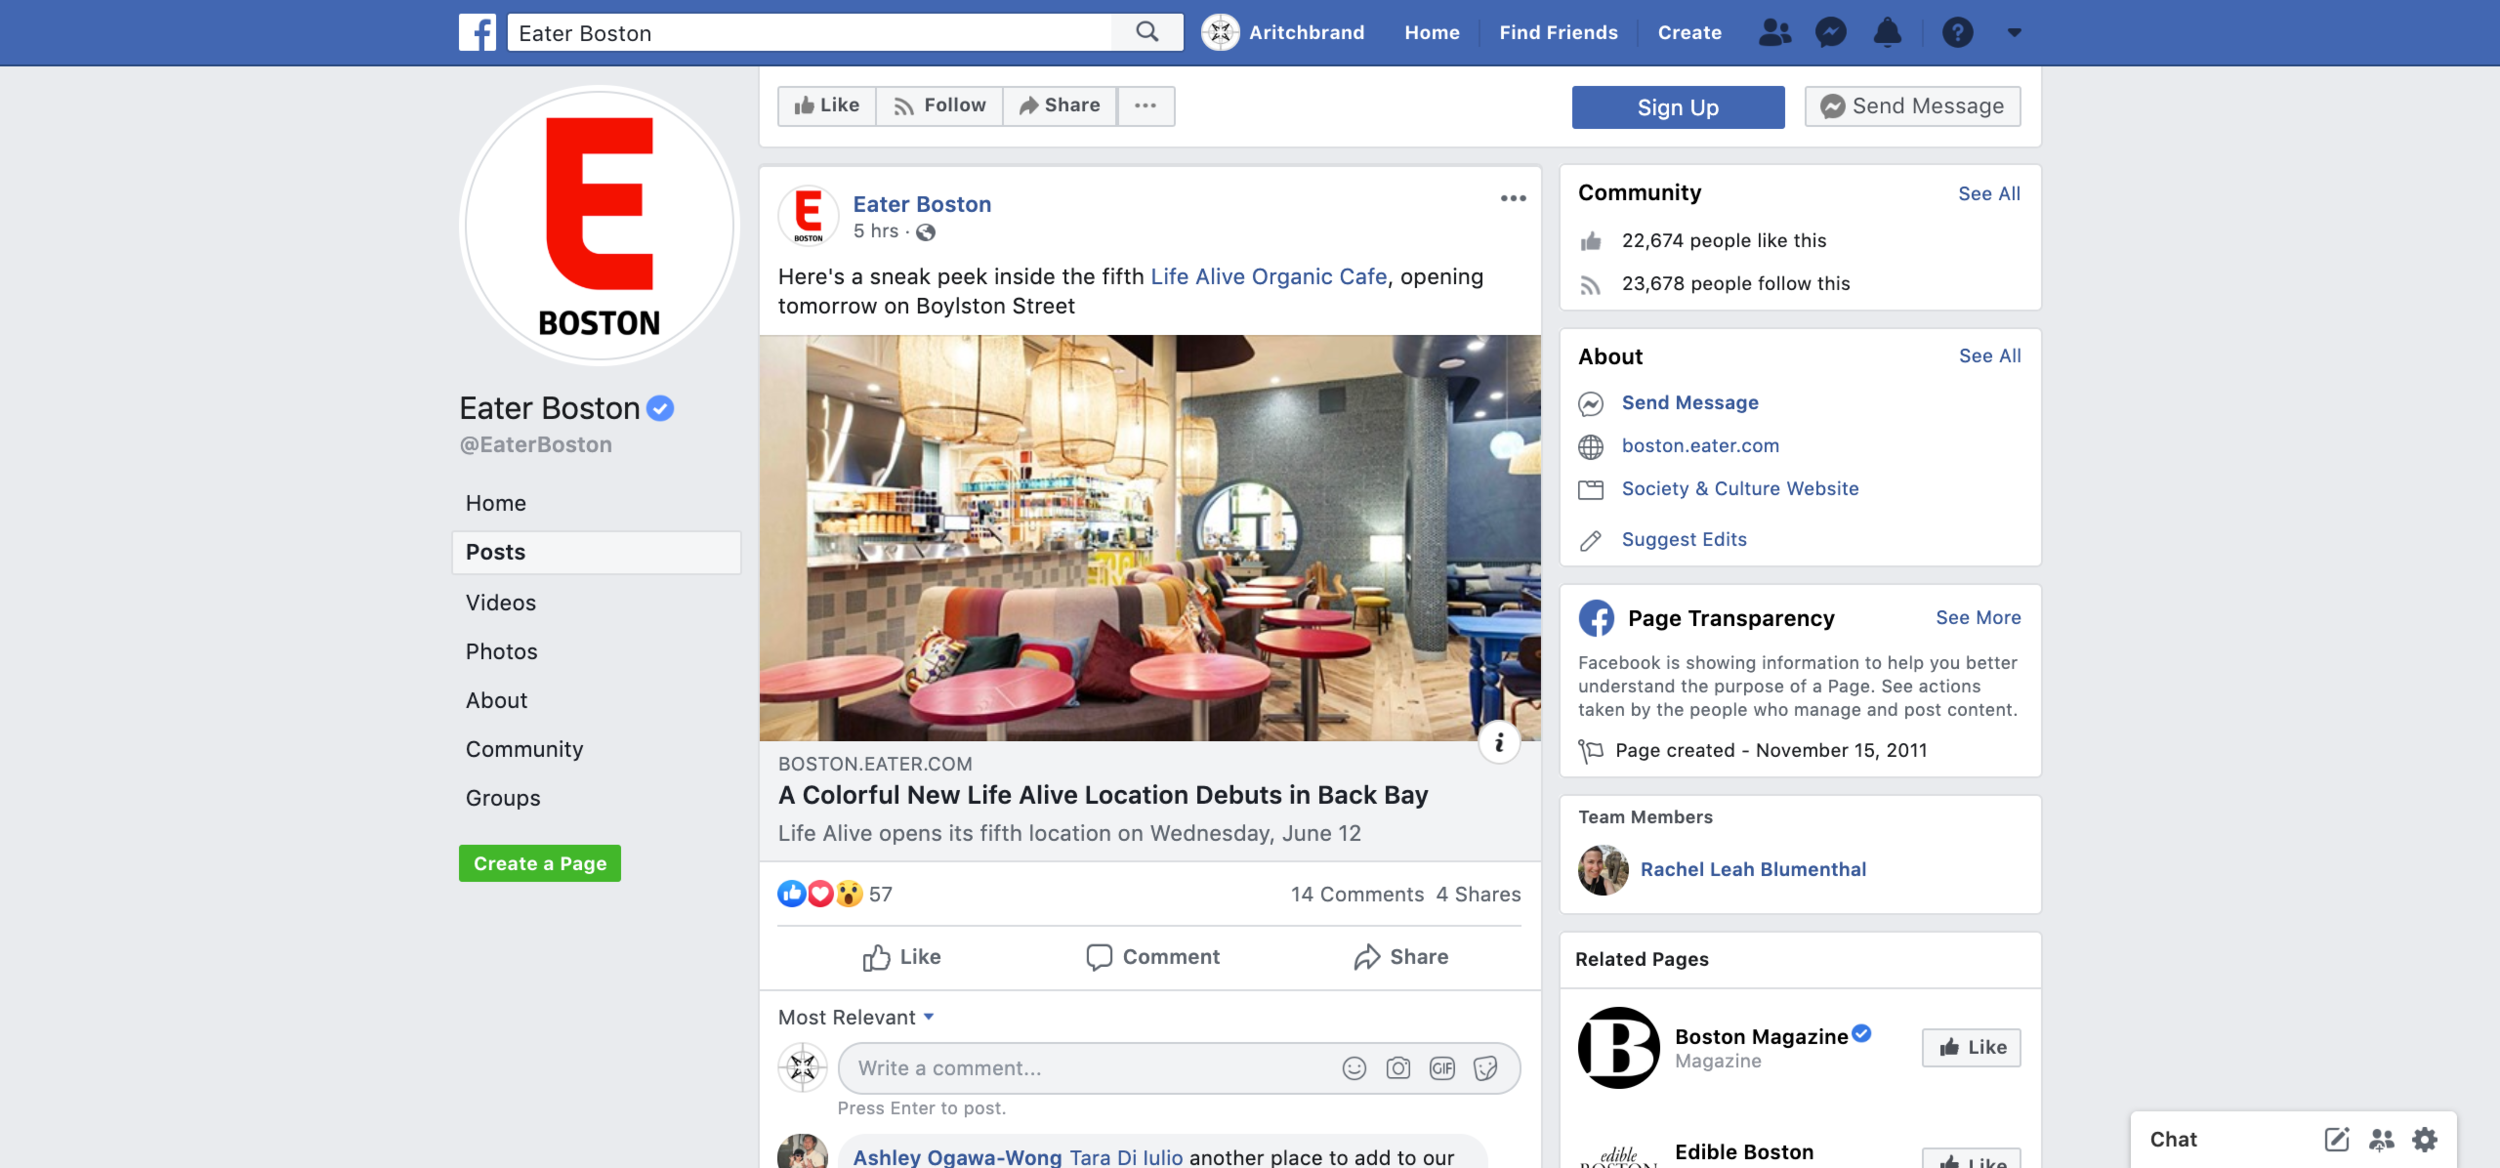 2019.06.11_Eater Boston, Facebook_Life Alive Back Bay.png